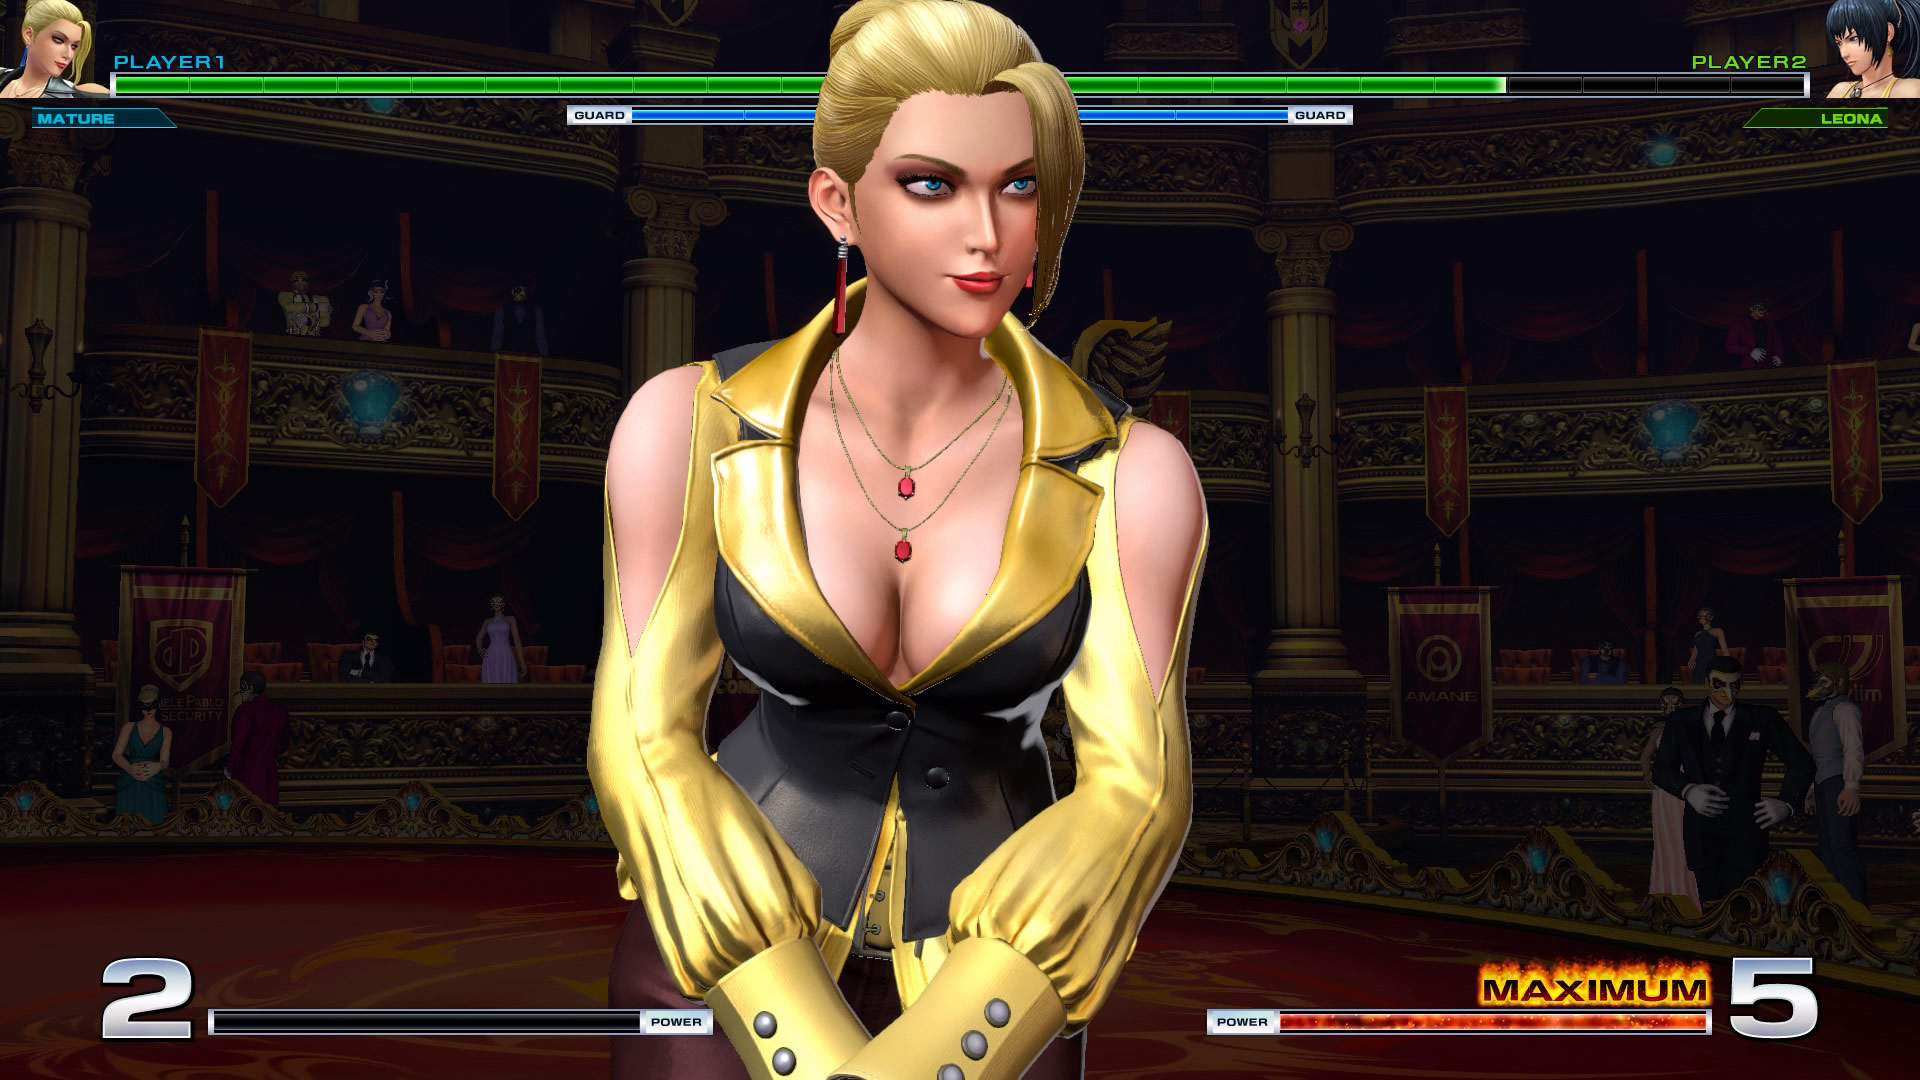 King of Fighters 14 1.10 graphics update 25 out of 60 image gallery